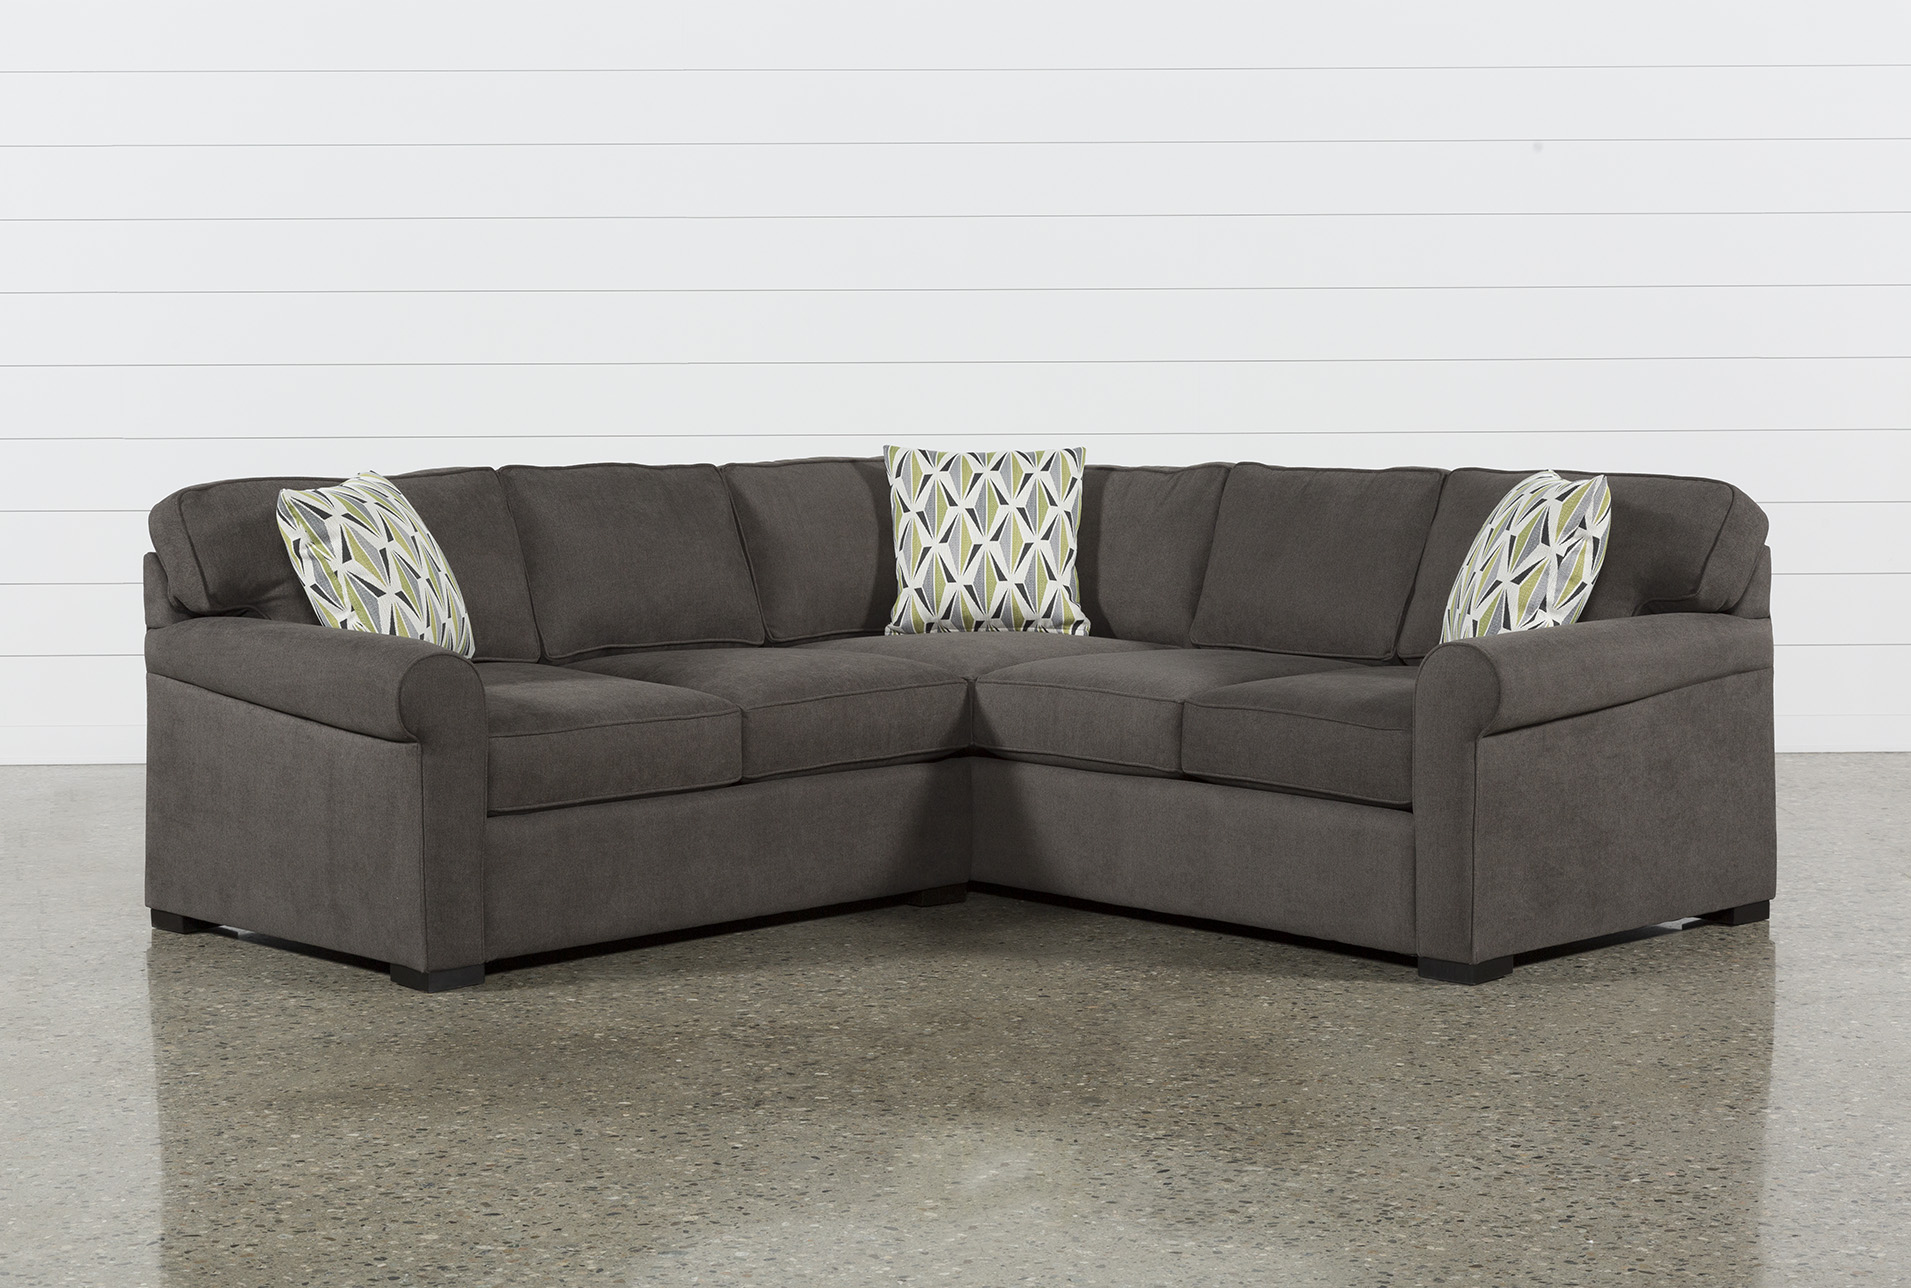 small sectional sofas living spaces rh livingspaces com Deep Sectional Sofa Deep Sectional Sofa